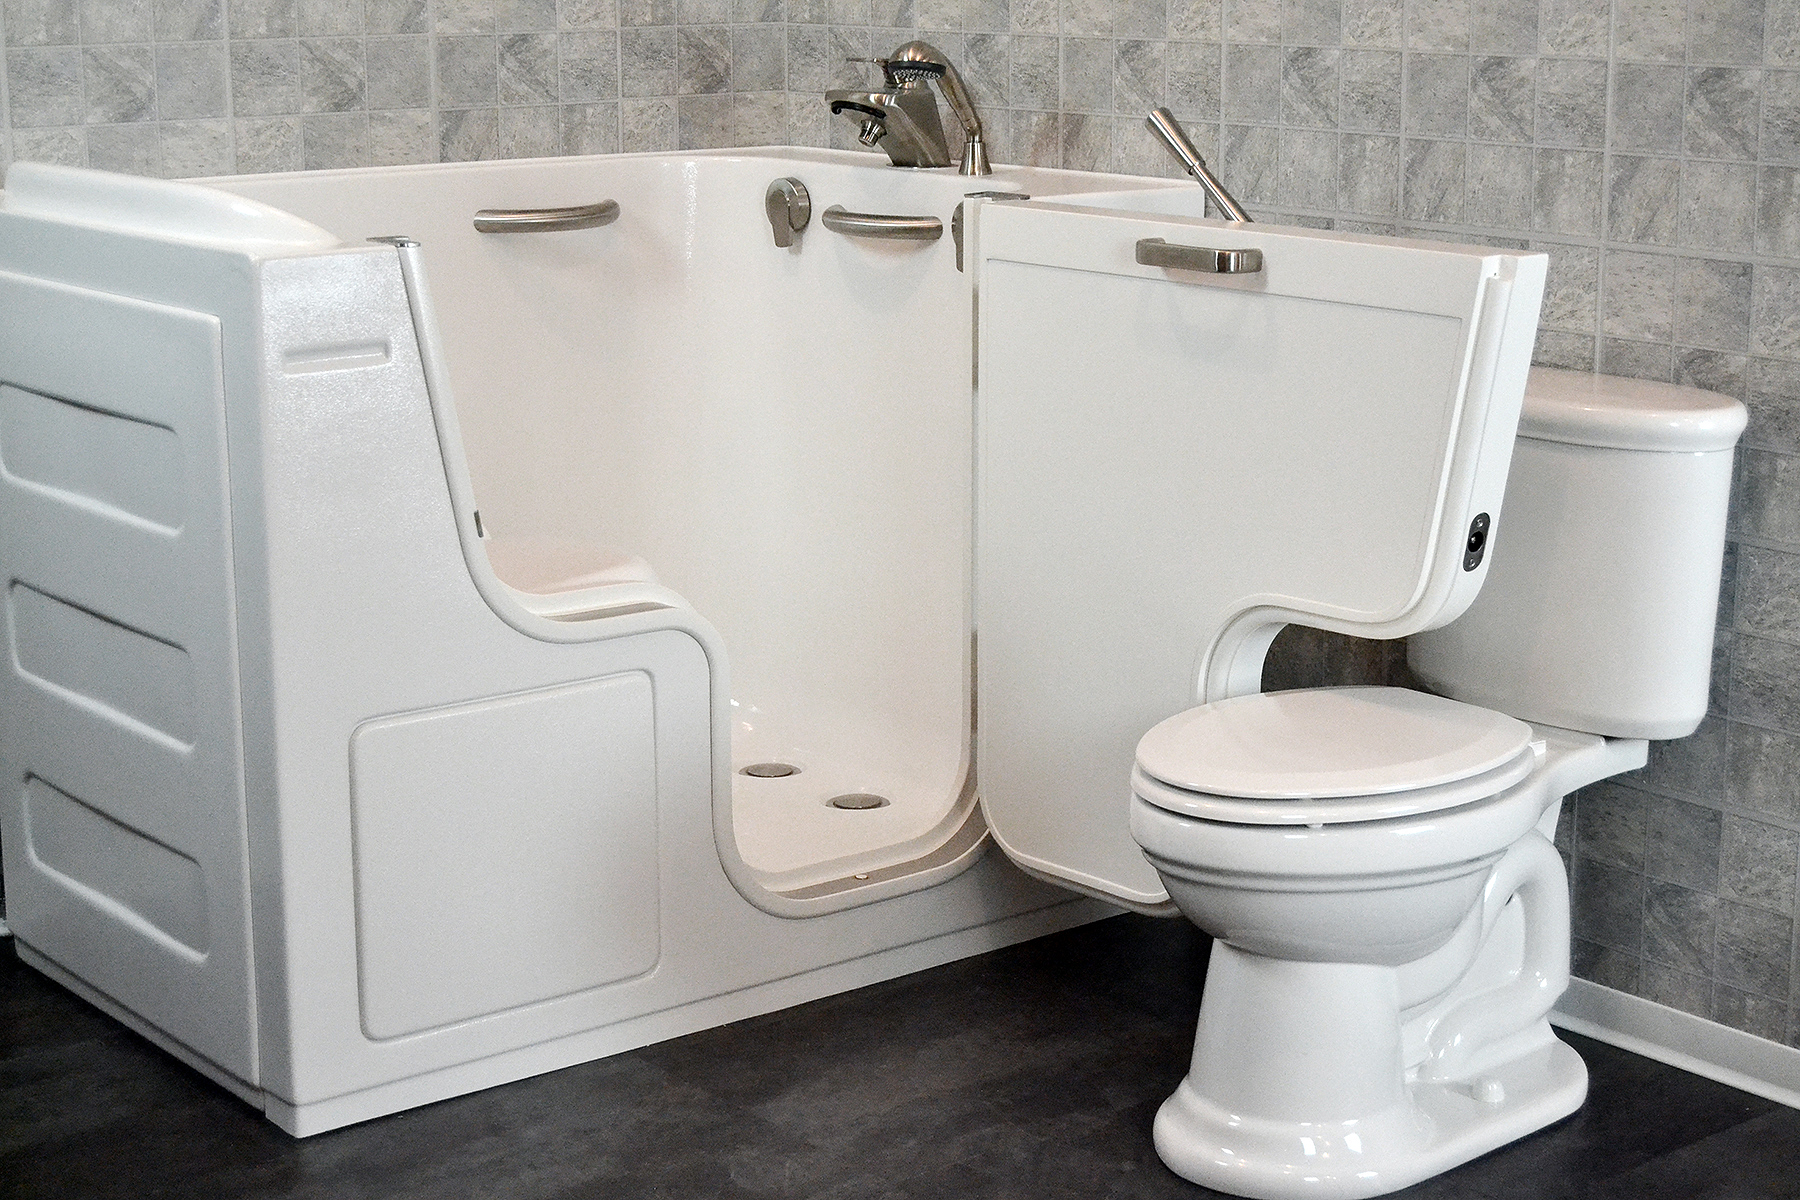 For Senior Citizens, As Well As Mobility Challenged, Handicapped, And  Special Needs Persons In The Houston Area, We Offer Walk In Tubs From  SanSpa.